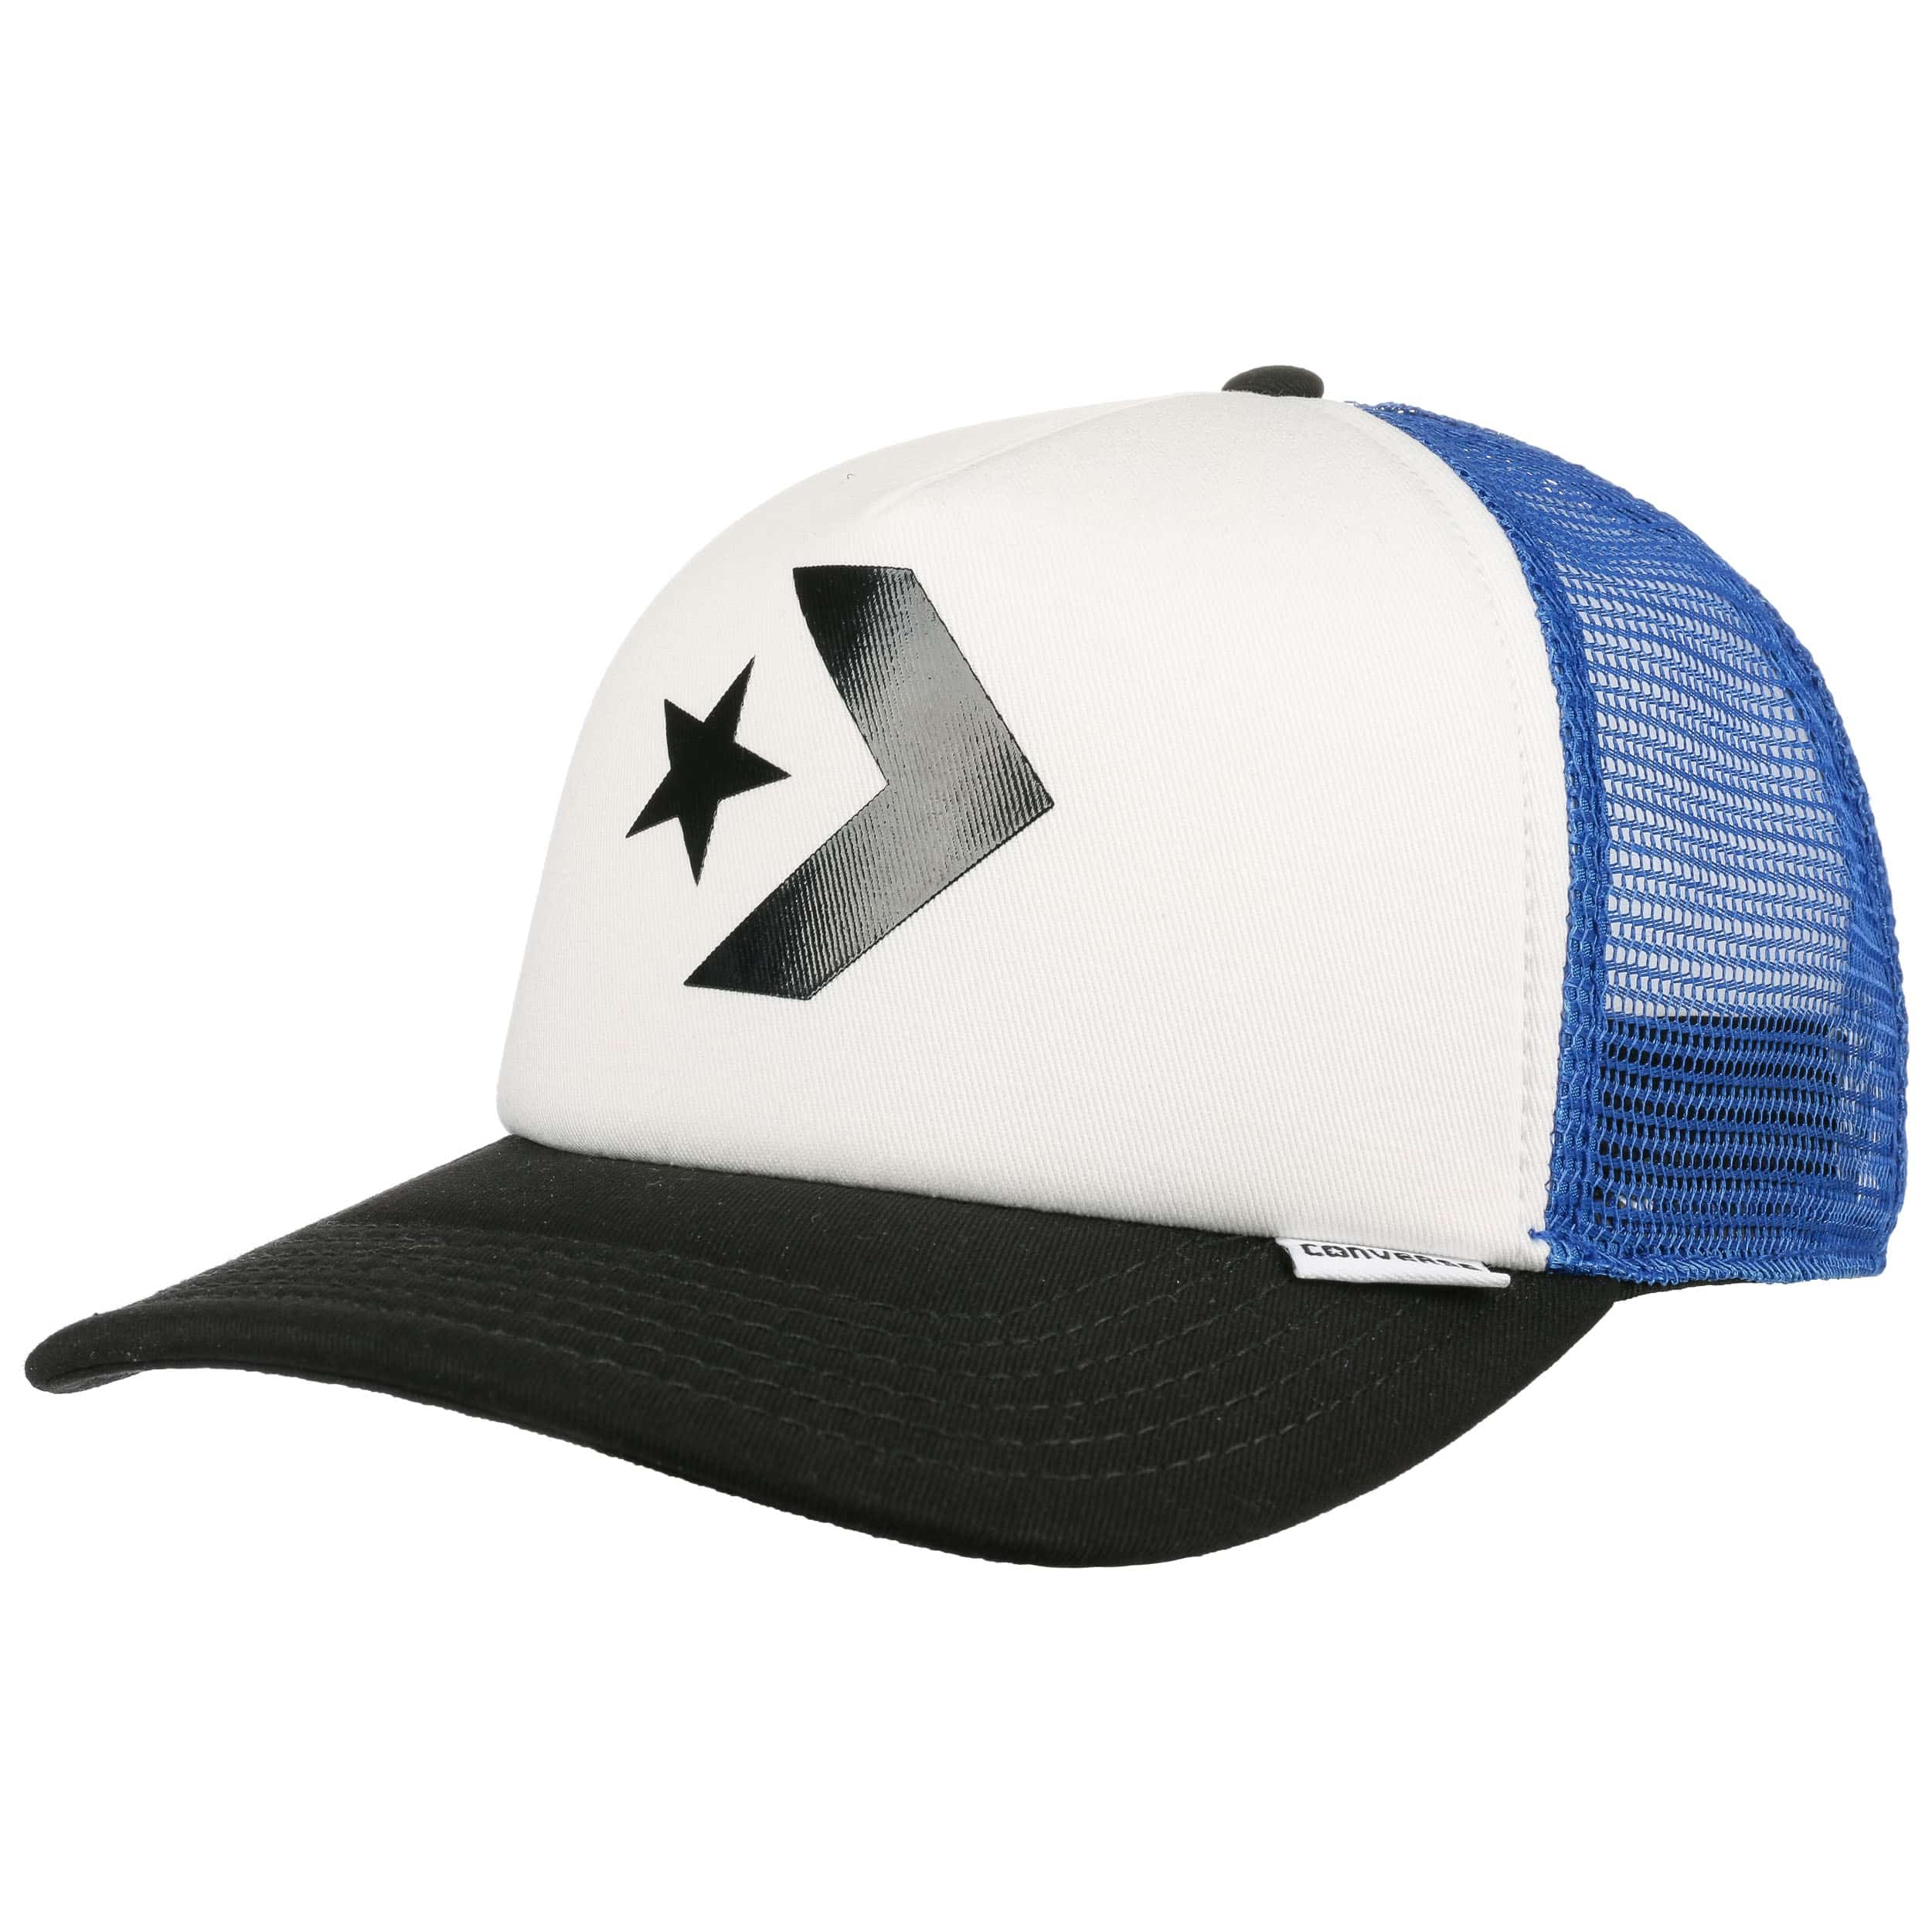 7482c69cf2e05 ... Star Chevron Flat Trucker Pet by Converse - wit 5